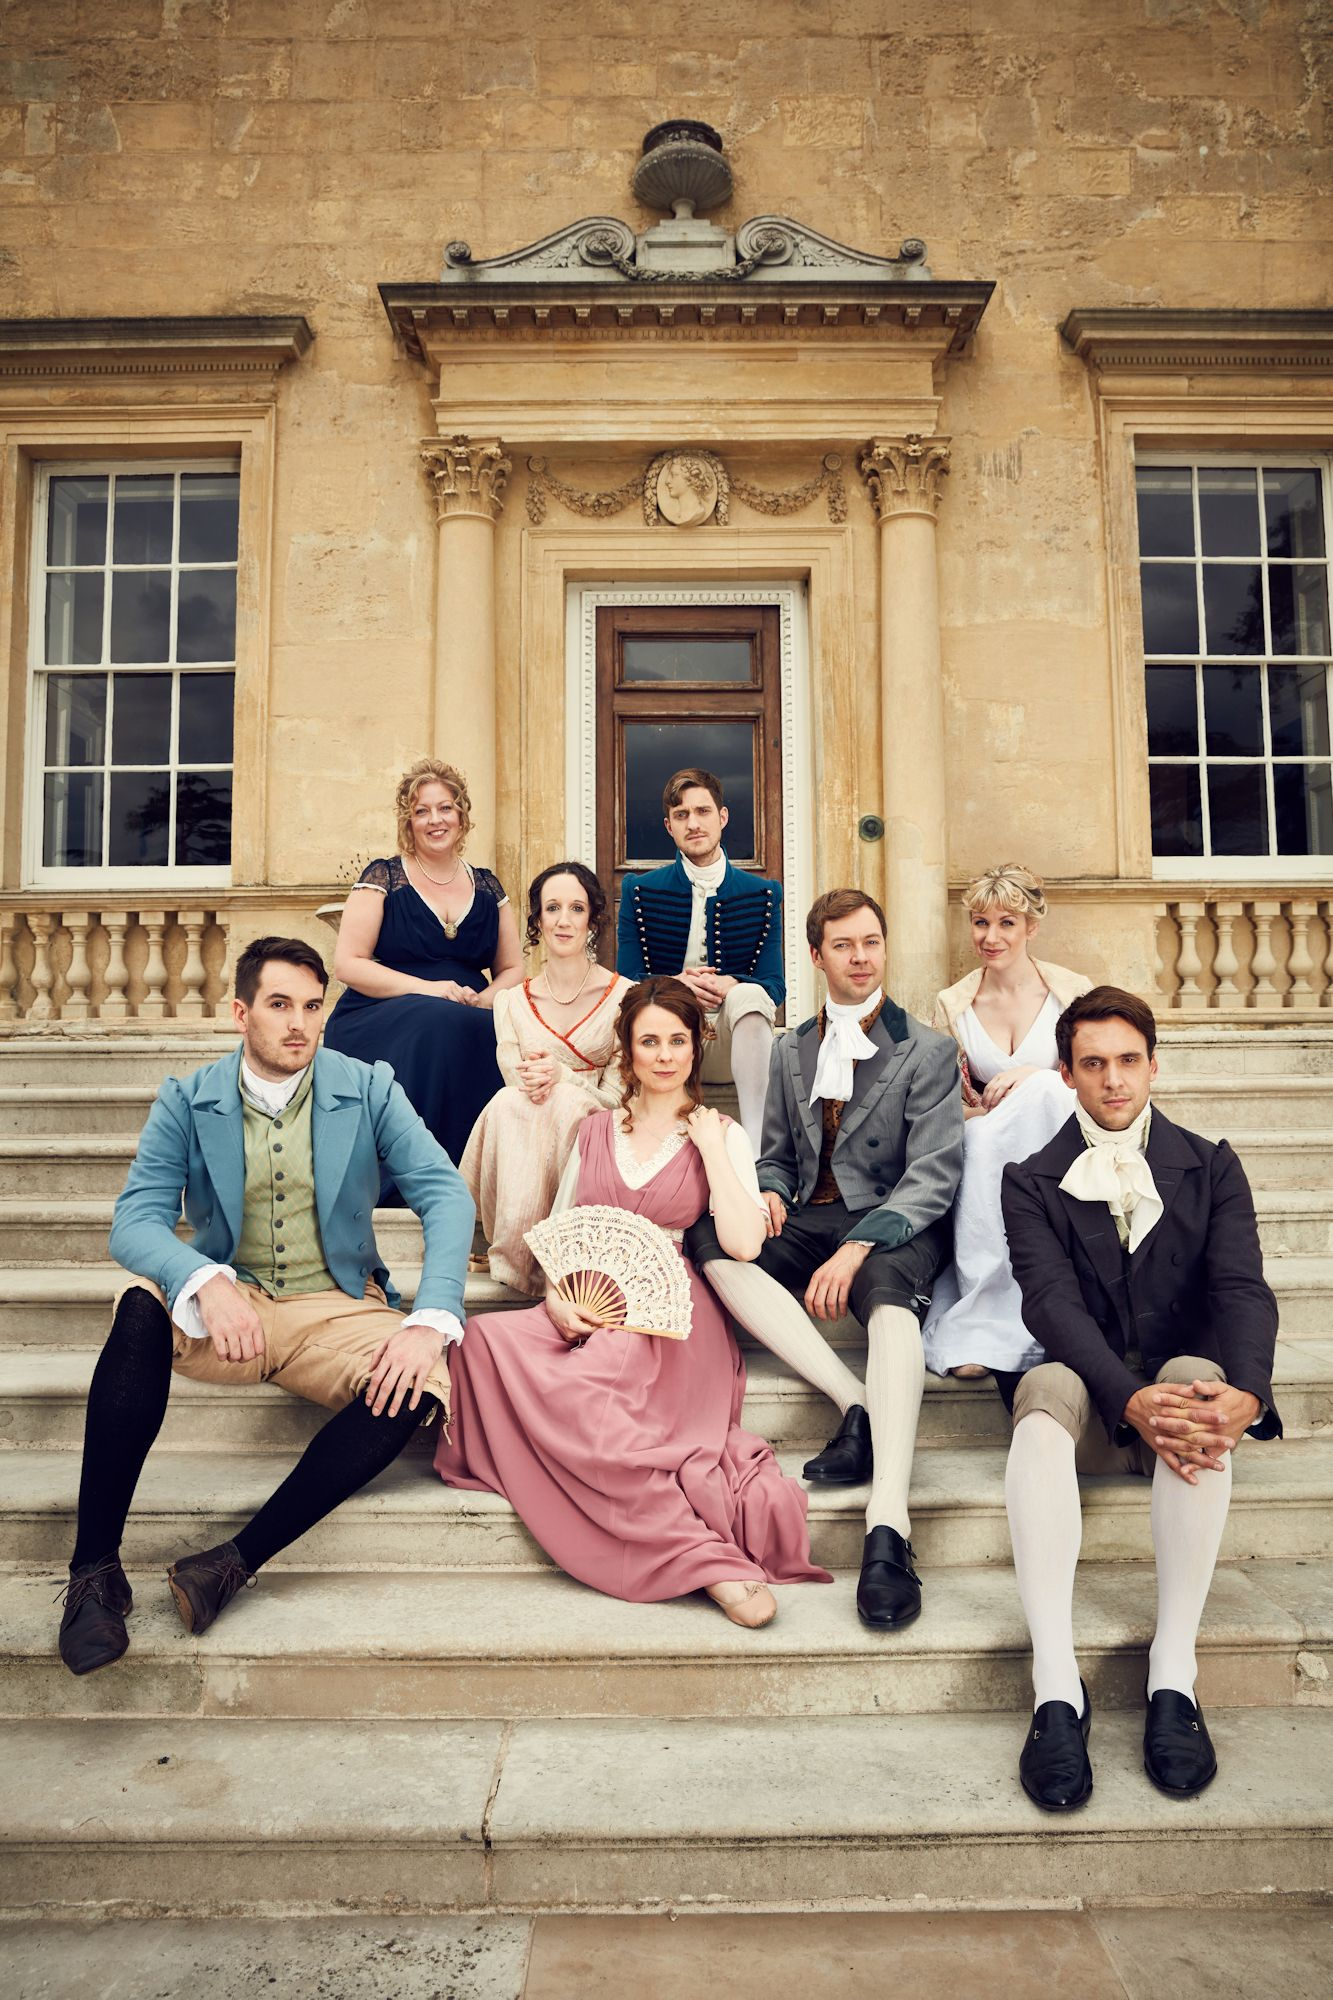 Eight performers in regency costumes sit on the steps of a large manorhouse.